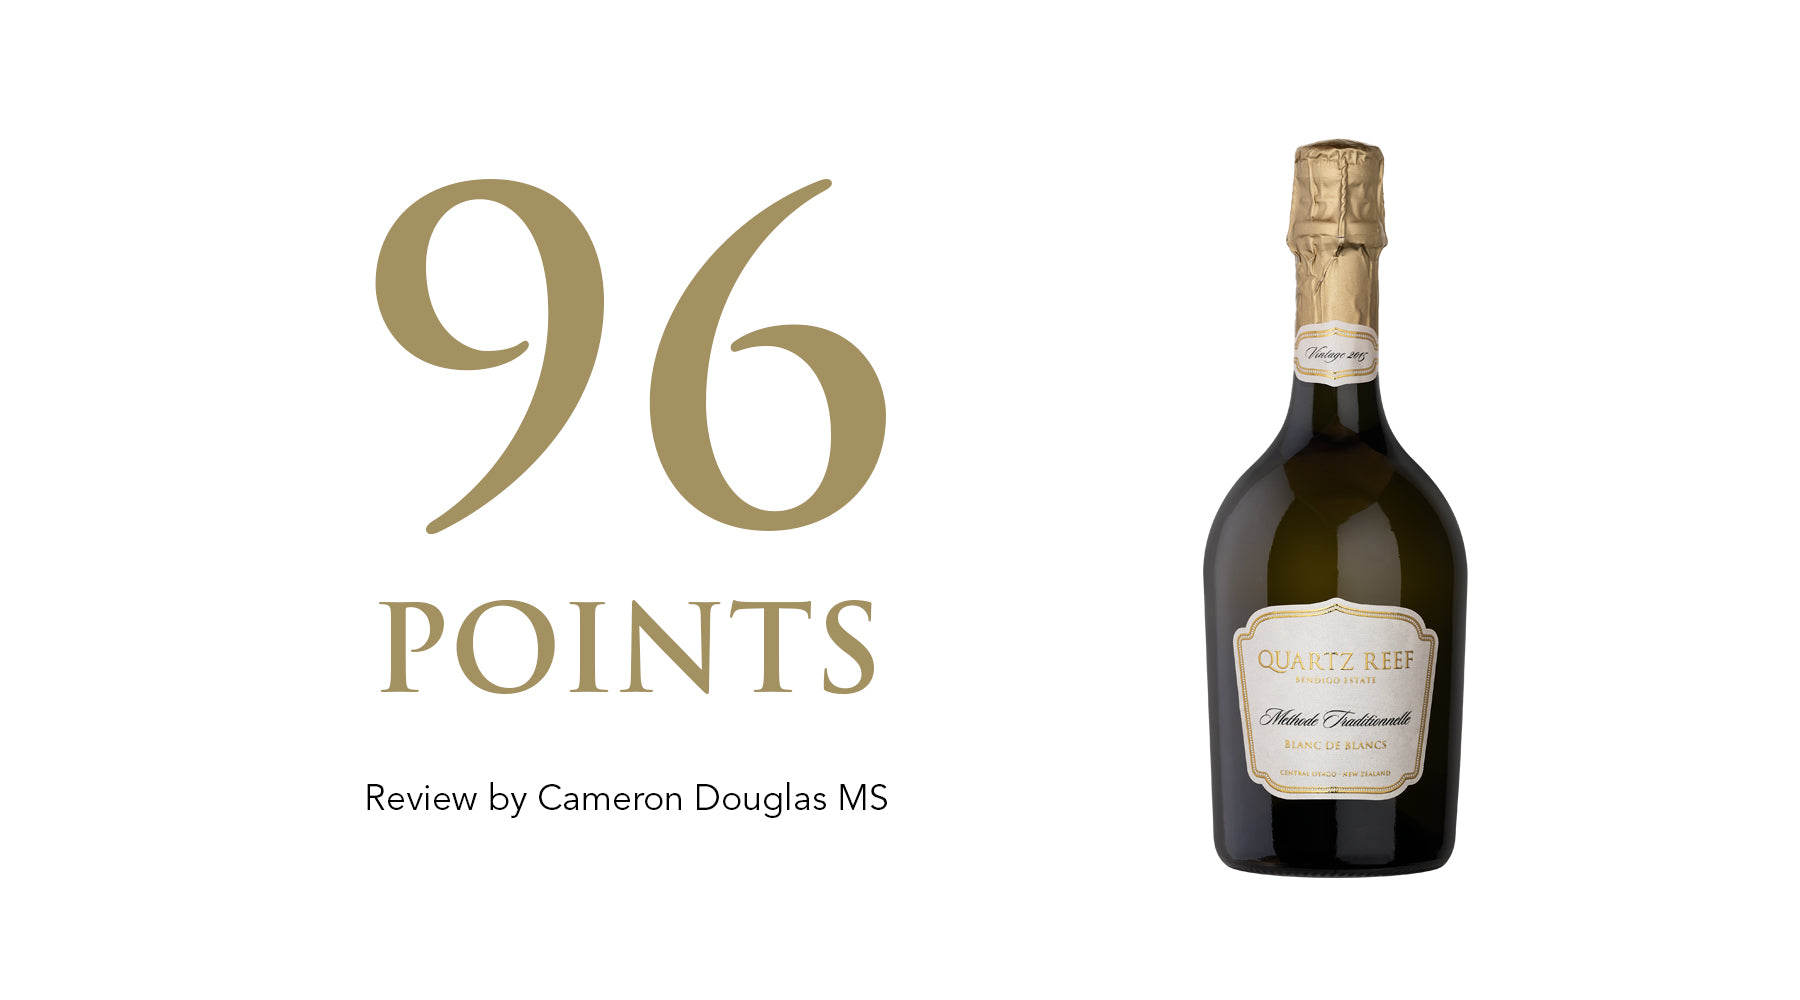 Vintage 2015 Blanc De Blancs - Awarded 96 Points